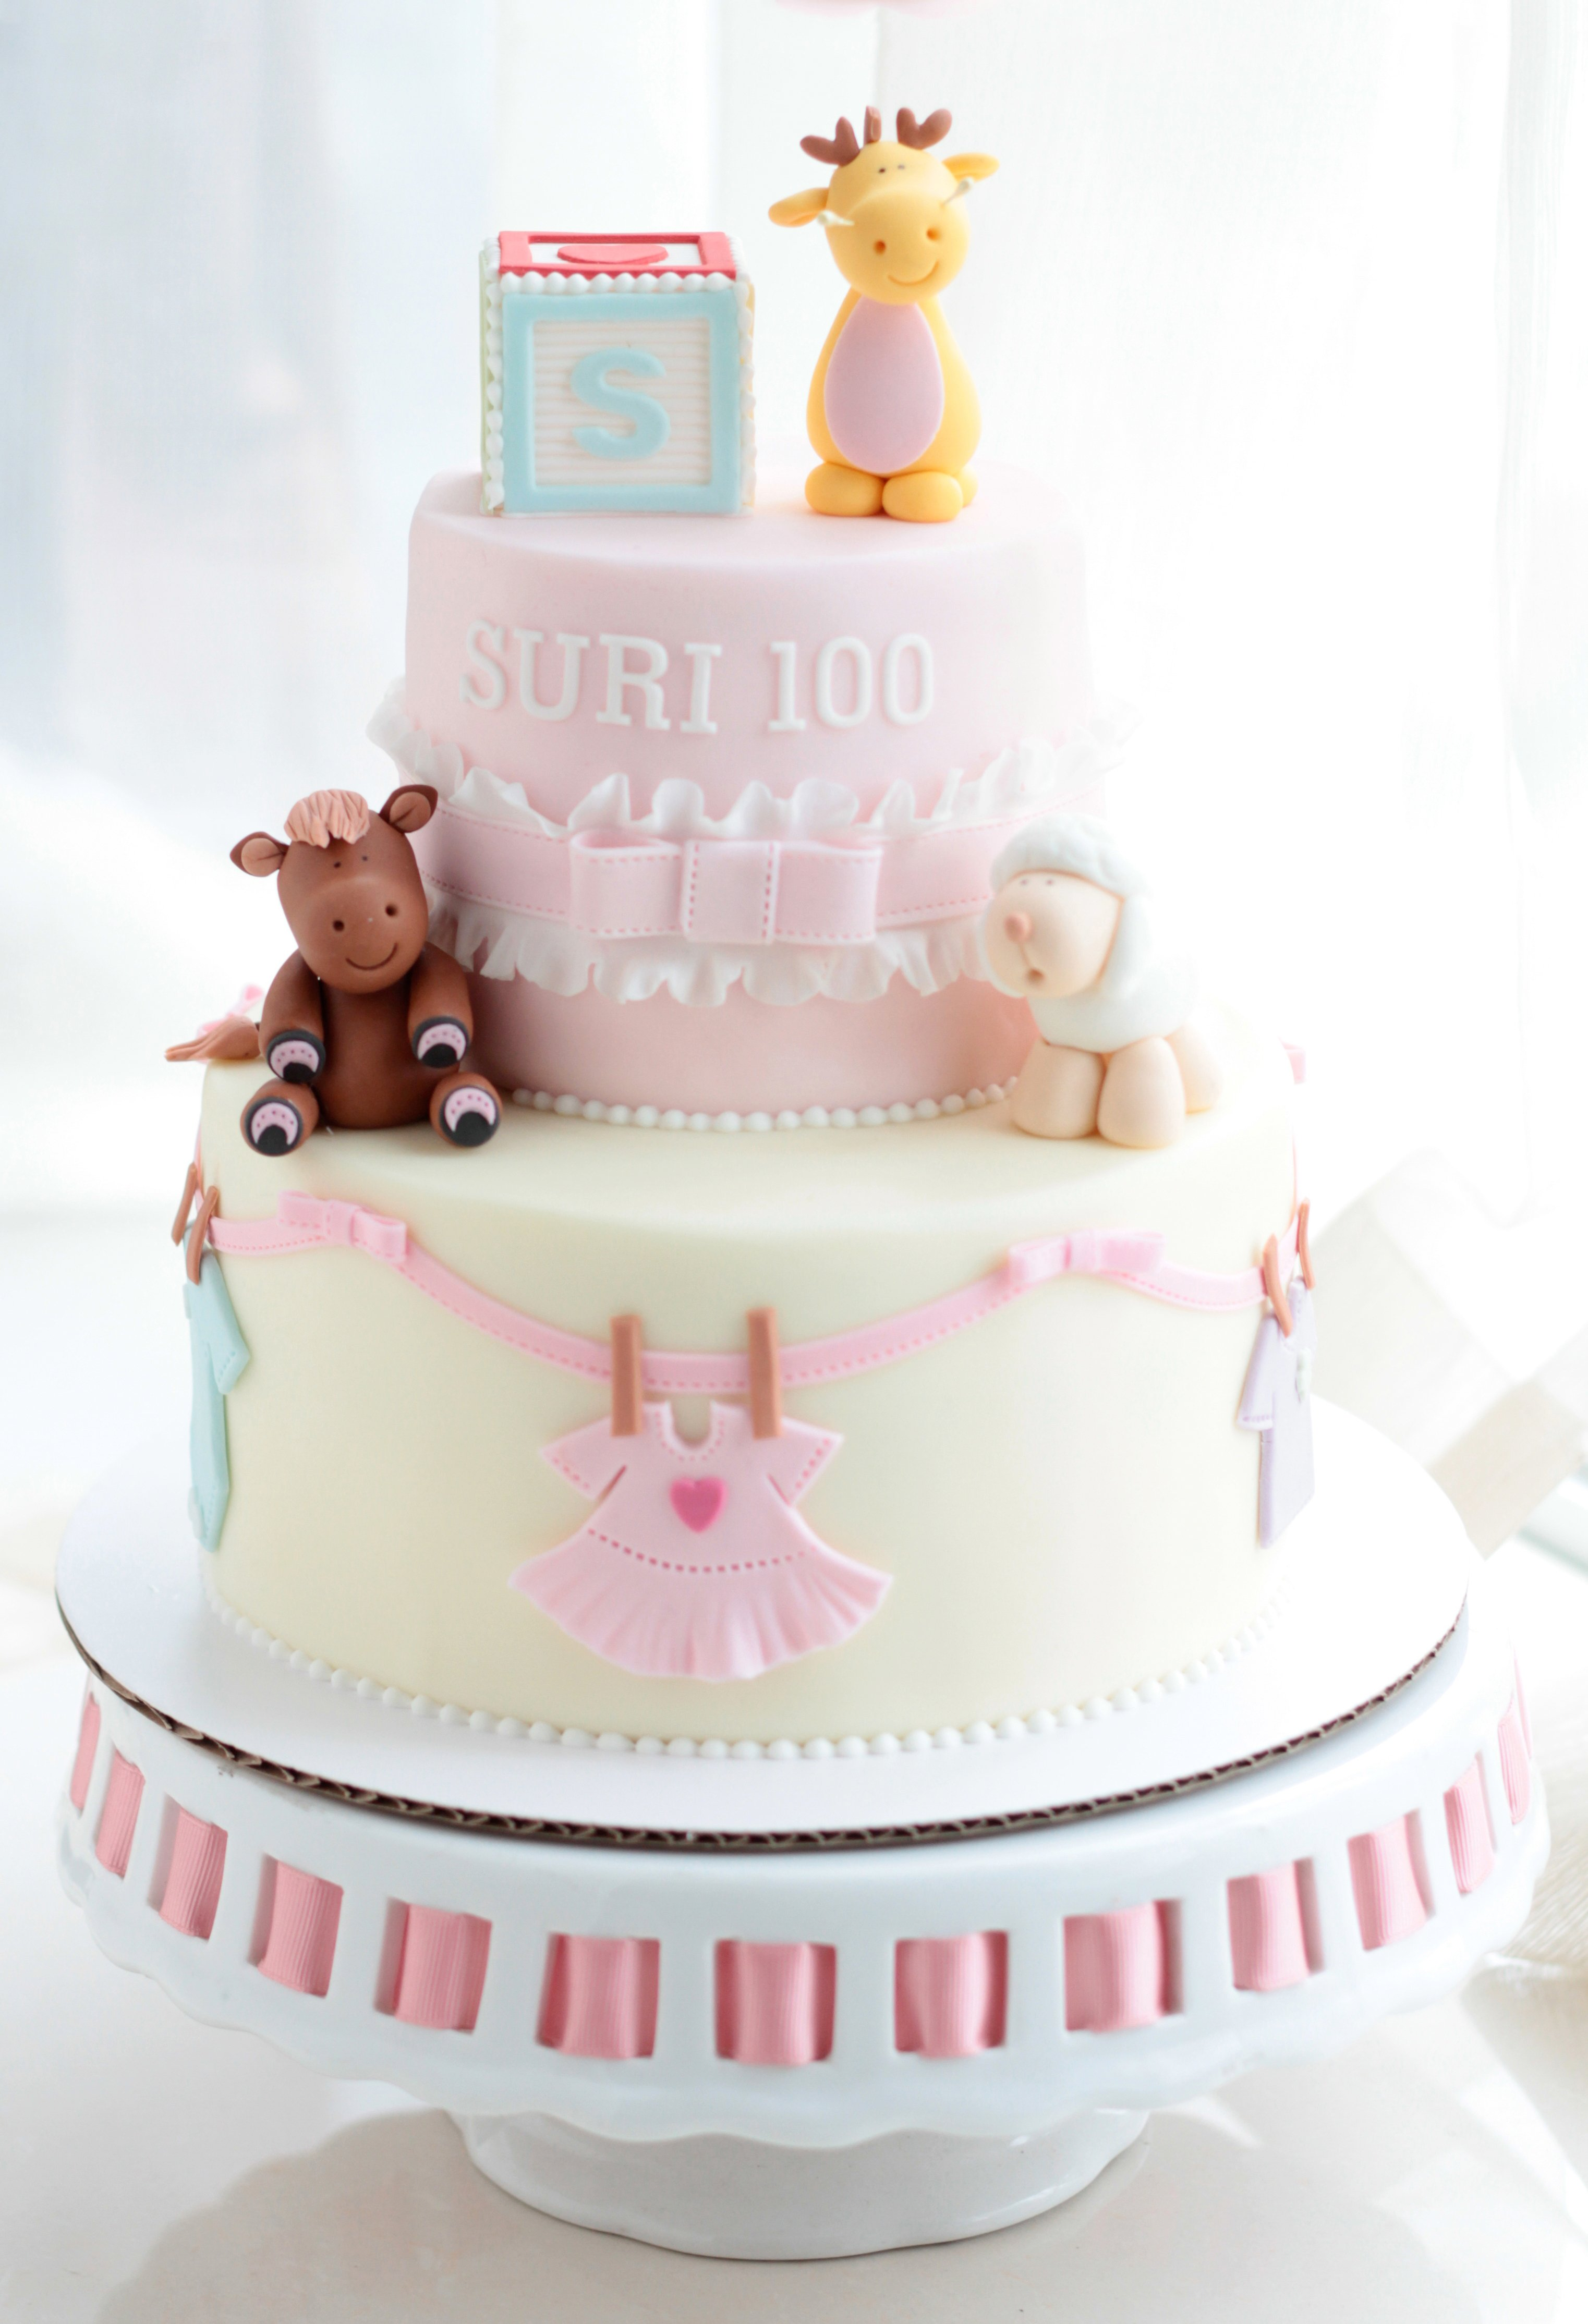 Wonderful Pastel De Baby Shower Para Niña De Color Rosa Y Blanco Y Decoraciones De  Osos Y